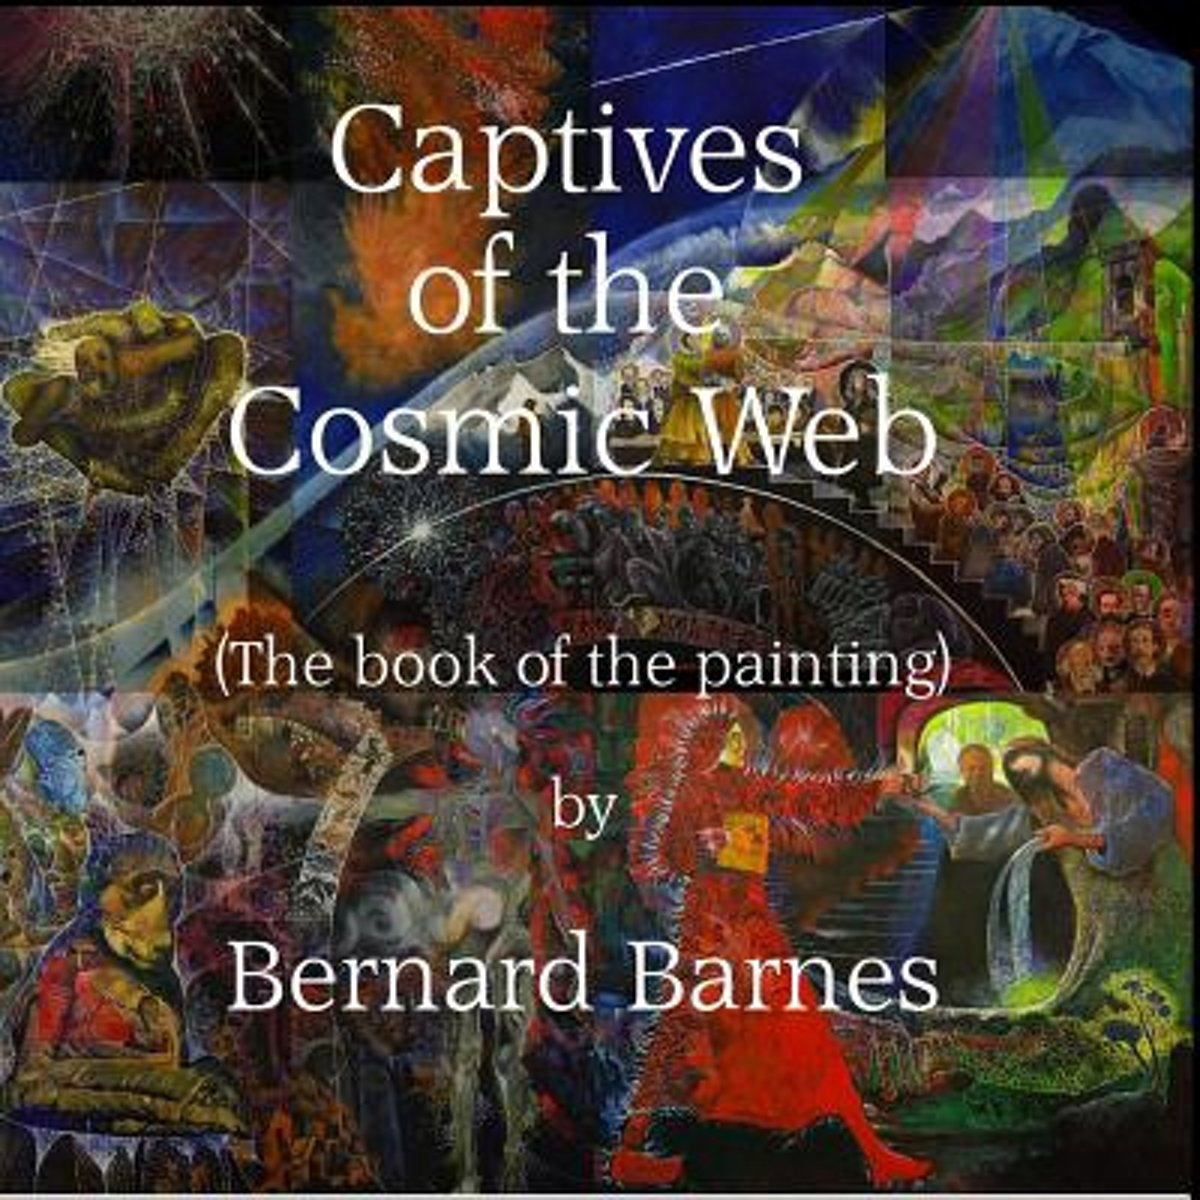 The Captives of the Cosmic Web